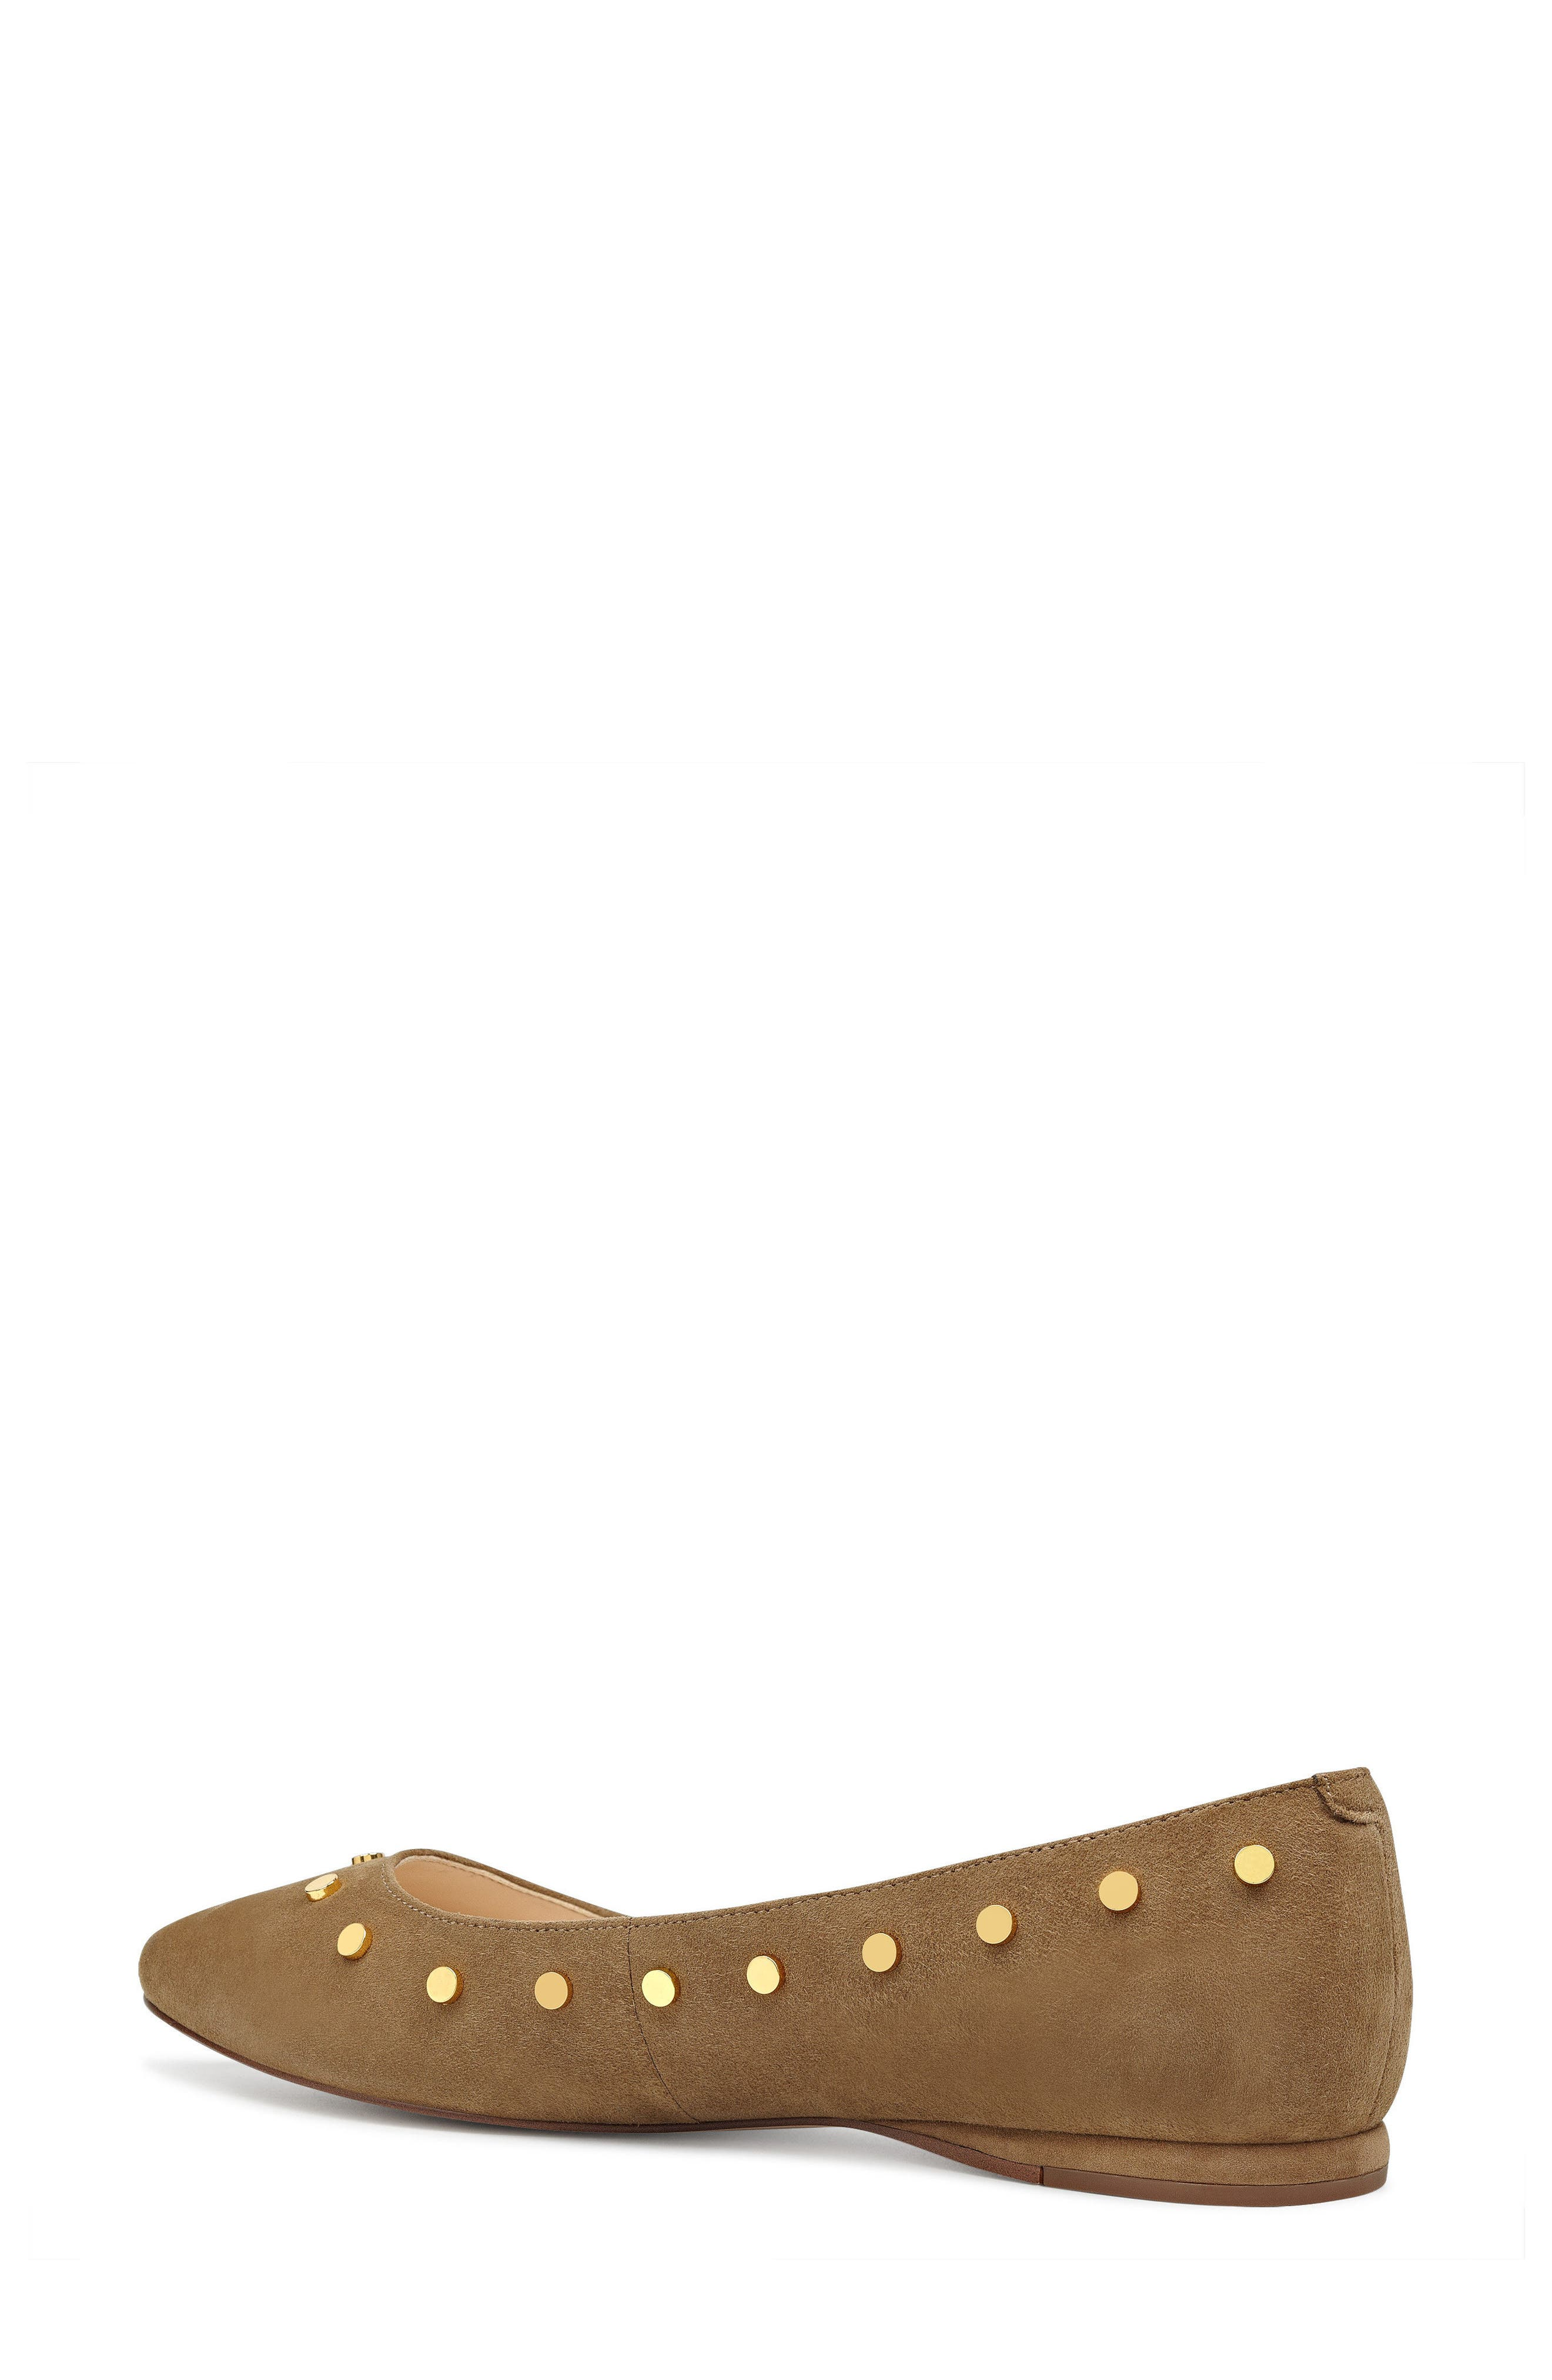 Sigismonda Studded Flat,                             Alternate thumbnail 2, color,                             Green Suede